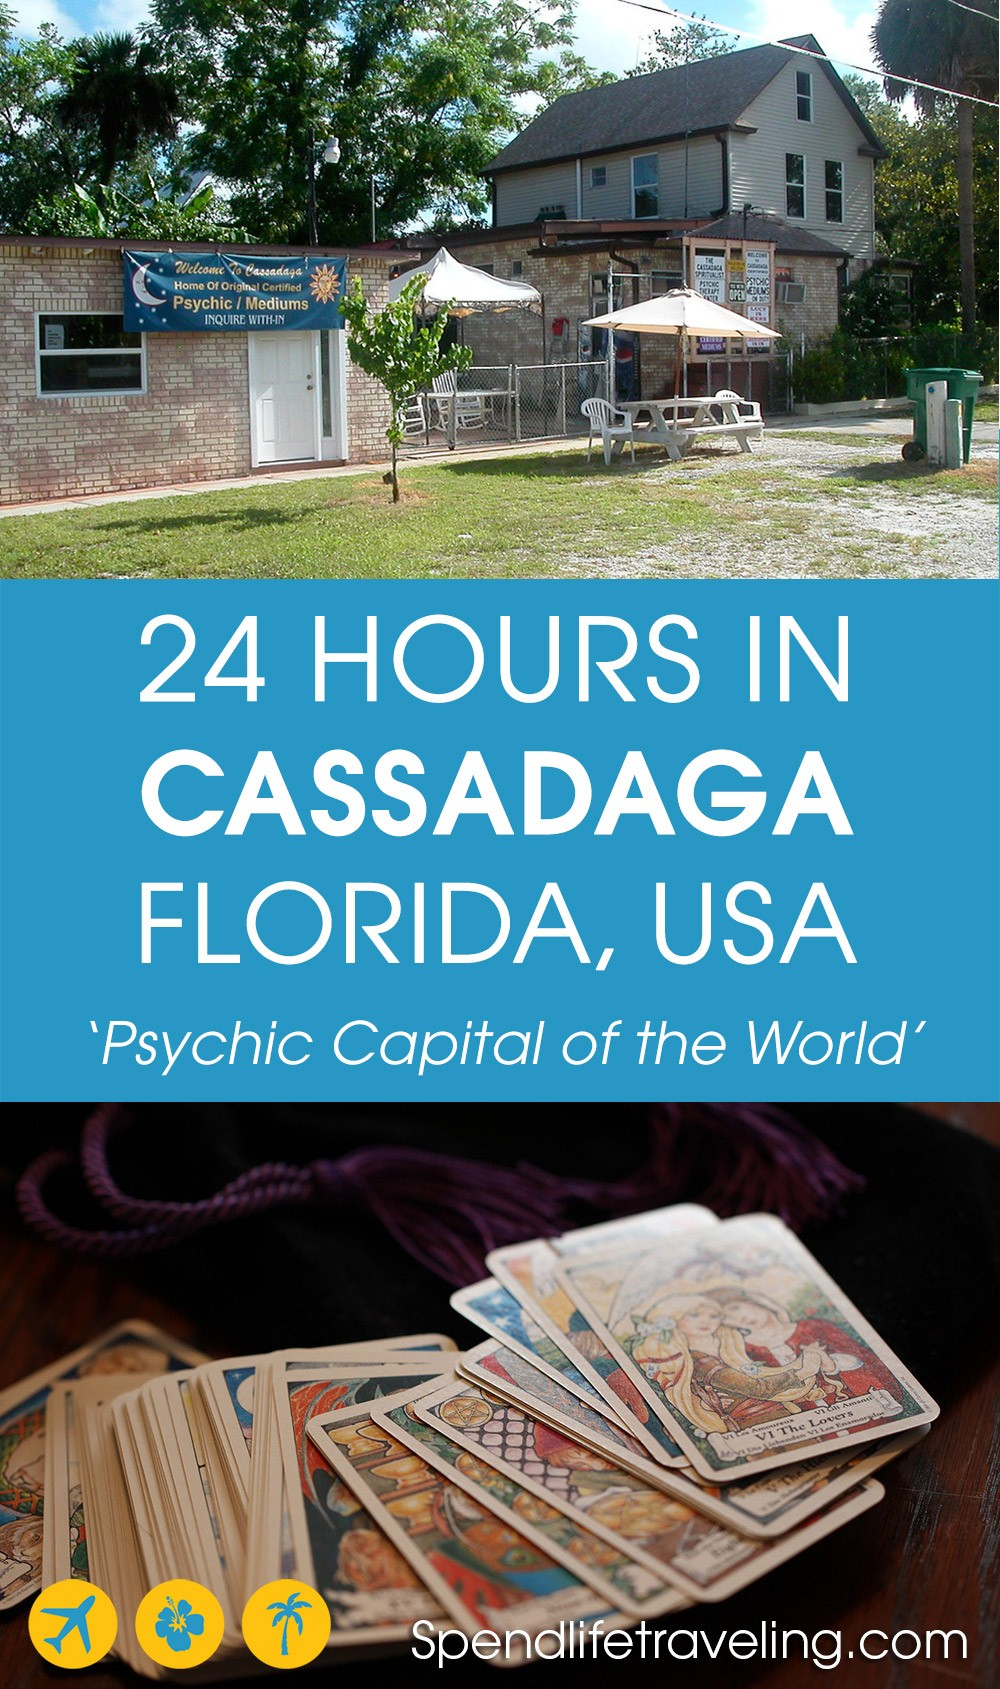 #Cassadaga is known as the psychic capital of the world. And that makes it a very unique place to visit! Check out what to see & do in this small community with a surprisingly rich history... #uniquedestinations #strangeplacestovisit #spirituality #Florida #darktourism